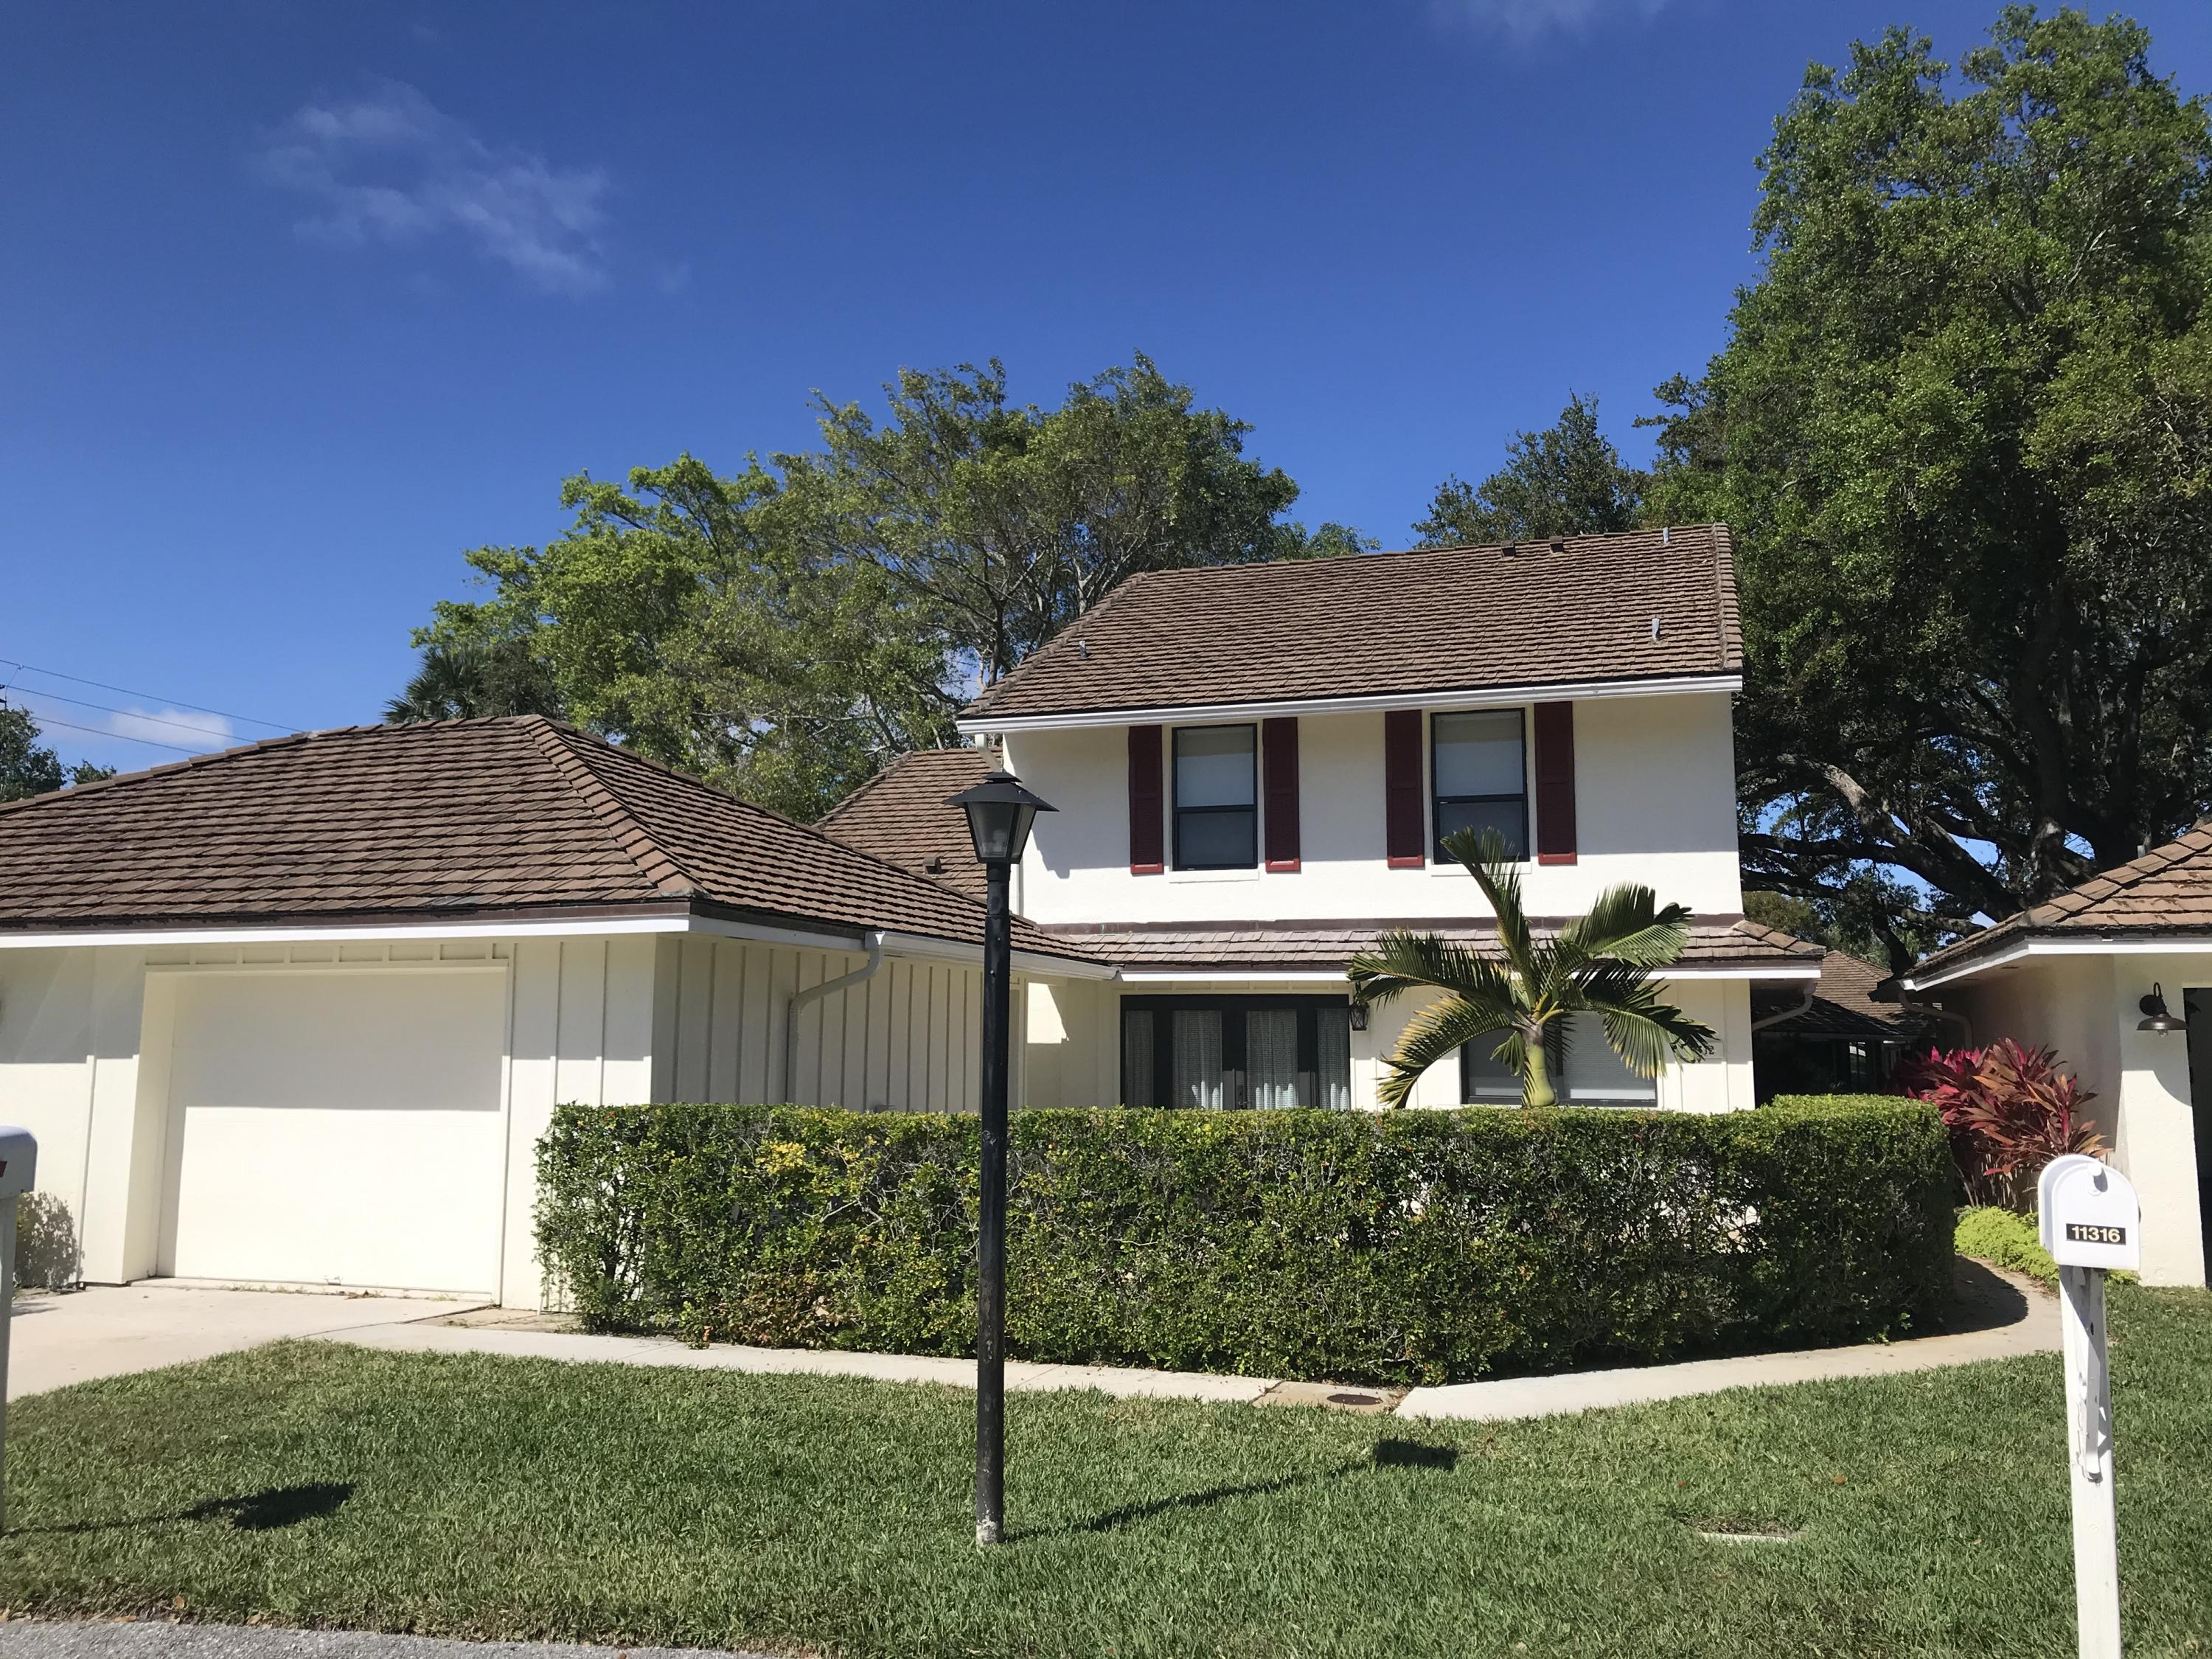 11312 Glen Oaks Court, North Palm Beach, Florida